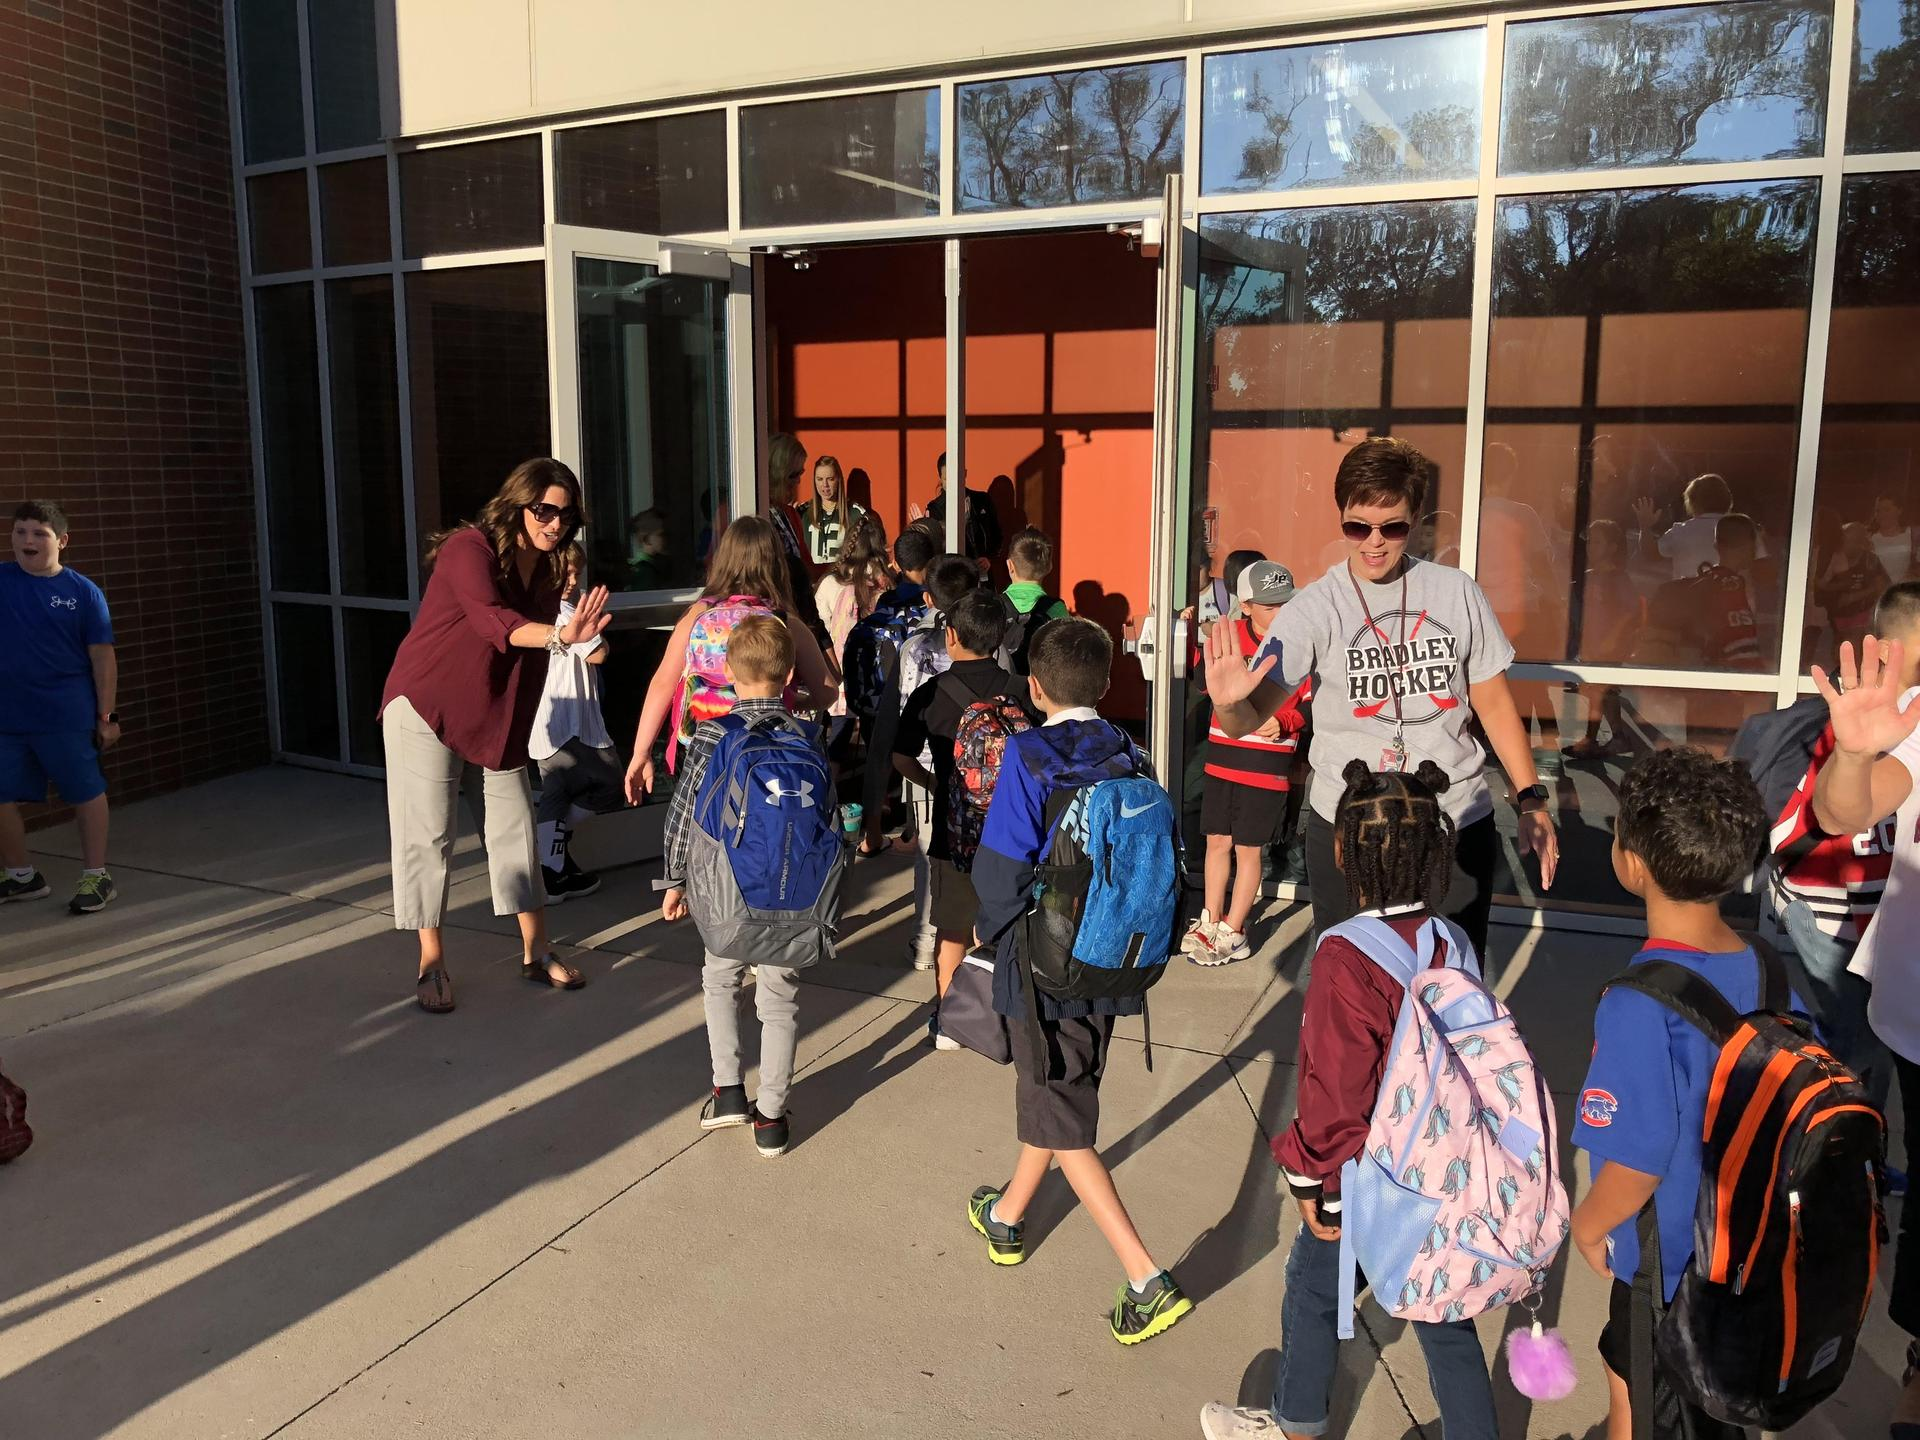 Hamilton Elementary  students receiving a high five as they enter school.